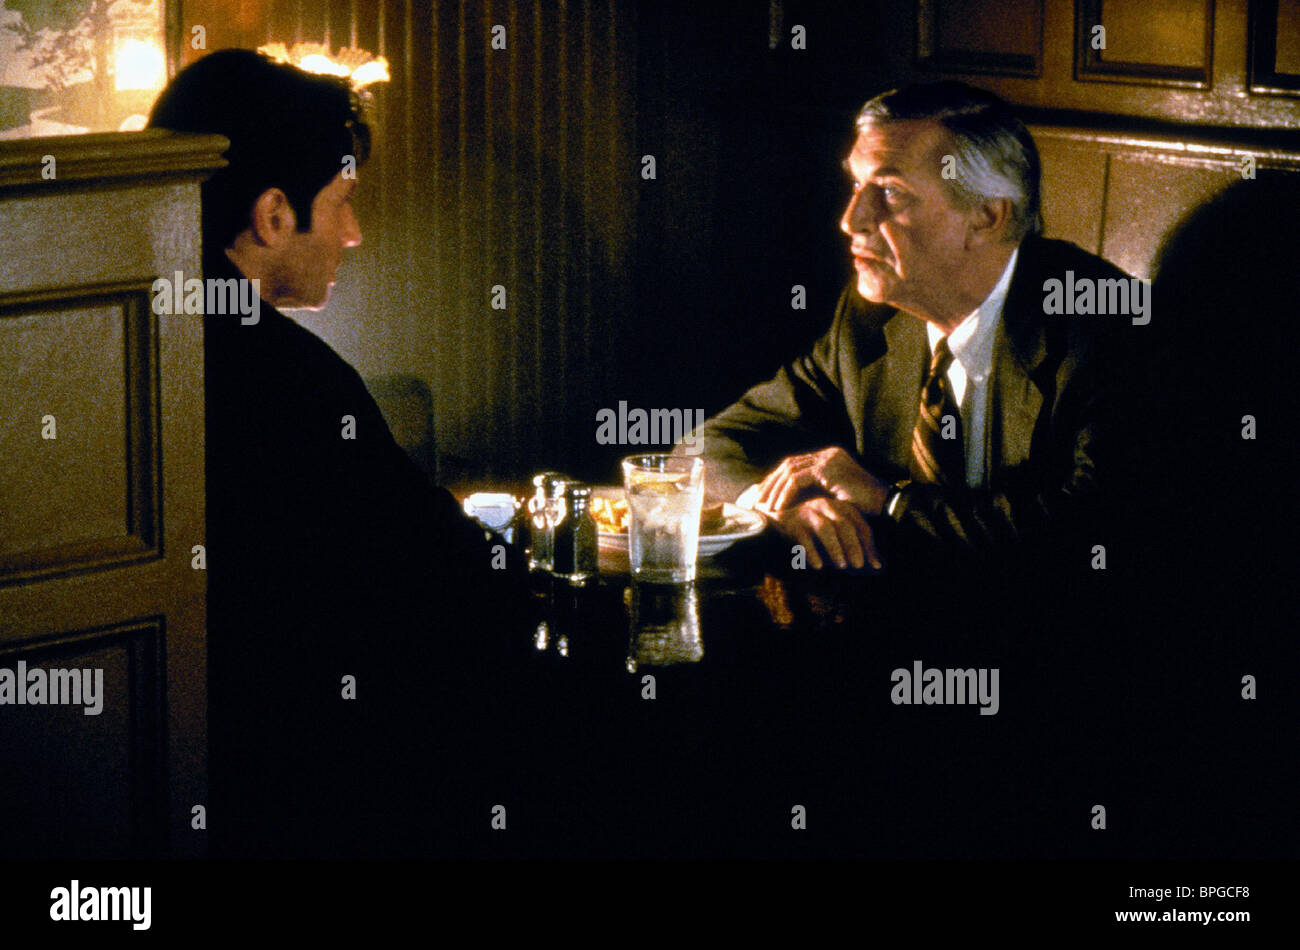 DAVID DUCHOVNY, MARTIN LANDAU, THE X FILES, 1998 - Stock Image